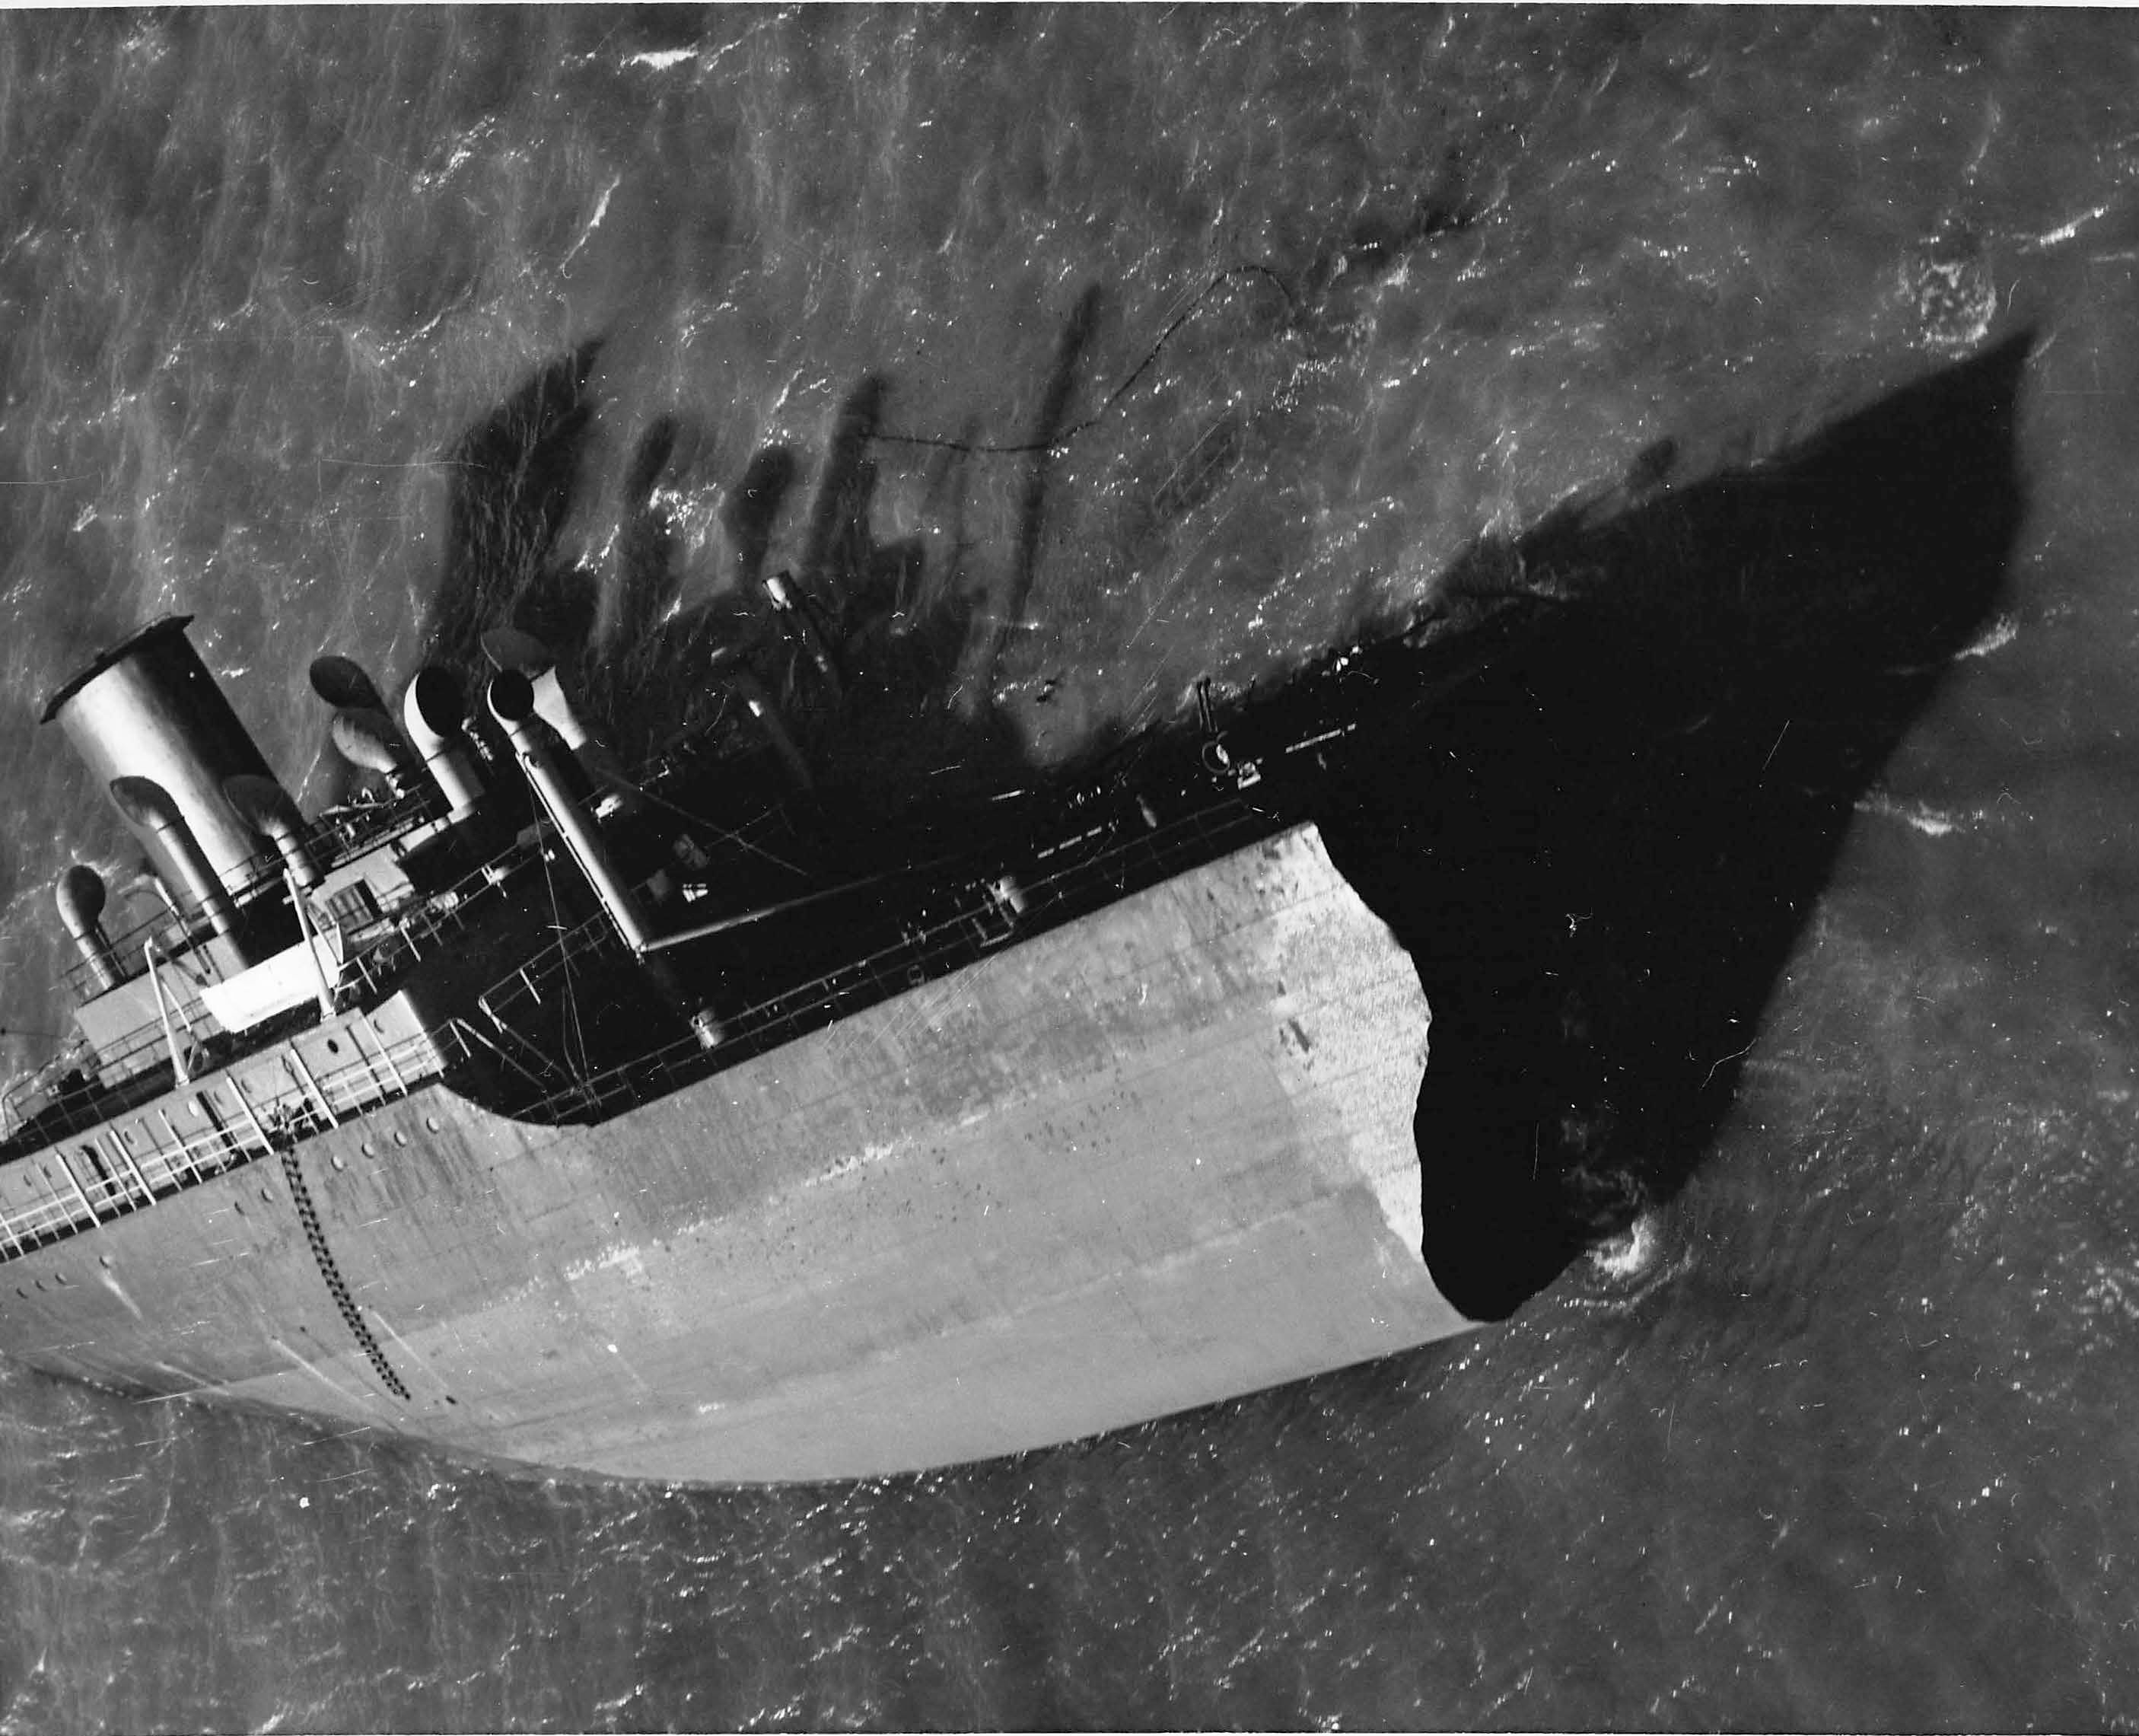 Feb 1952 - The stern of the Pendleton off Chatham, MA  This wreck